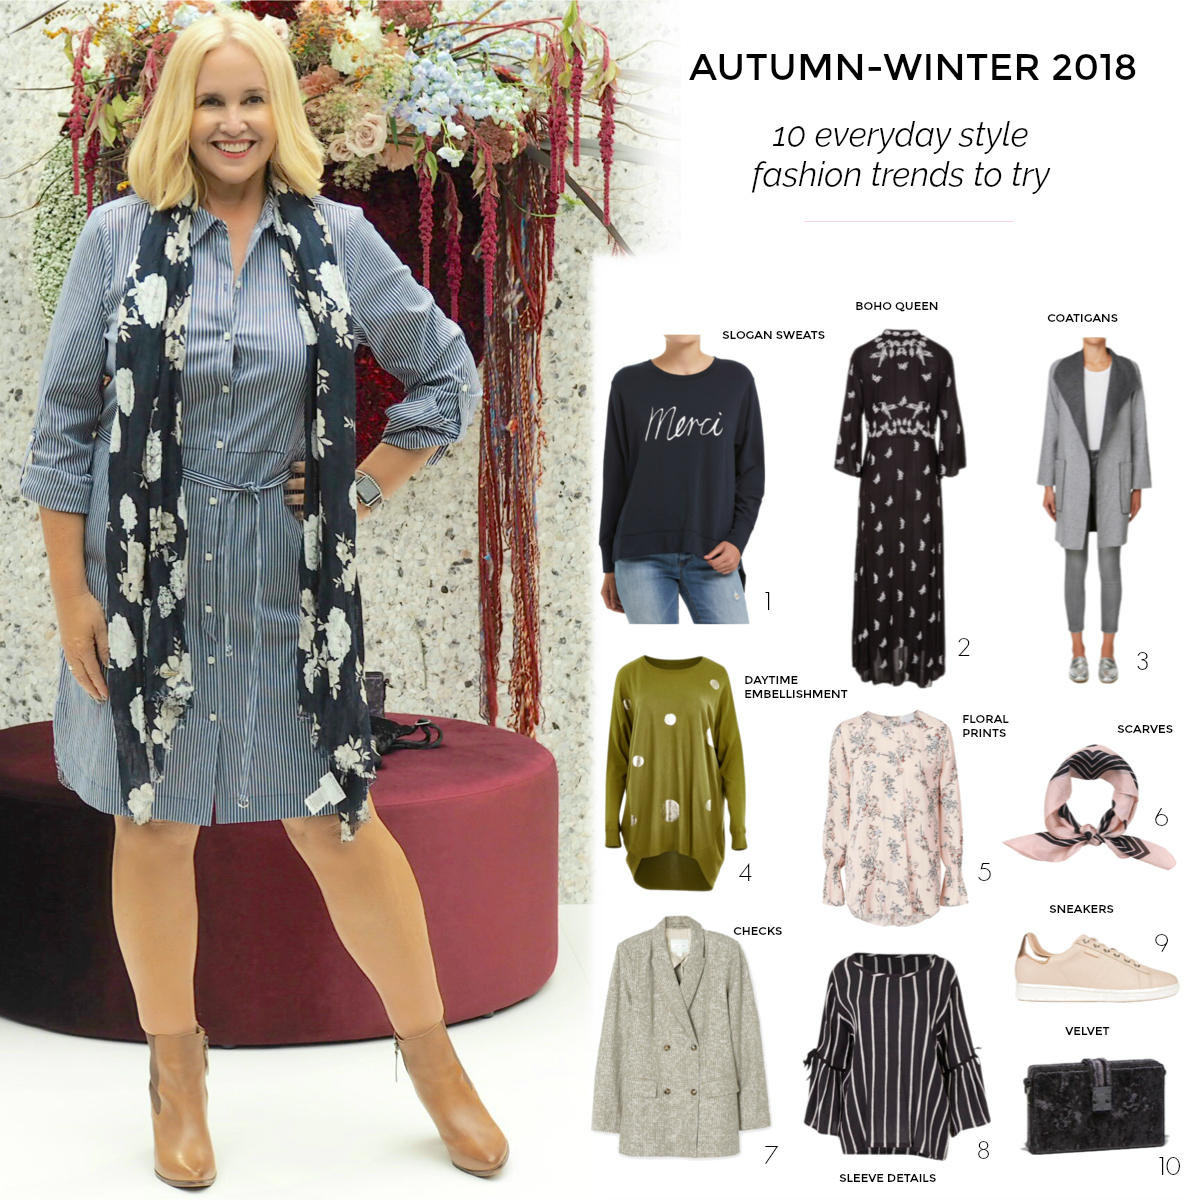 10 Everyday Style Fashion Trends For Autumn Winter 2018